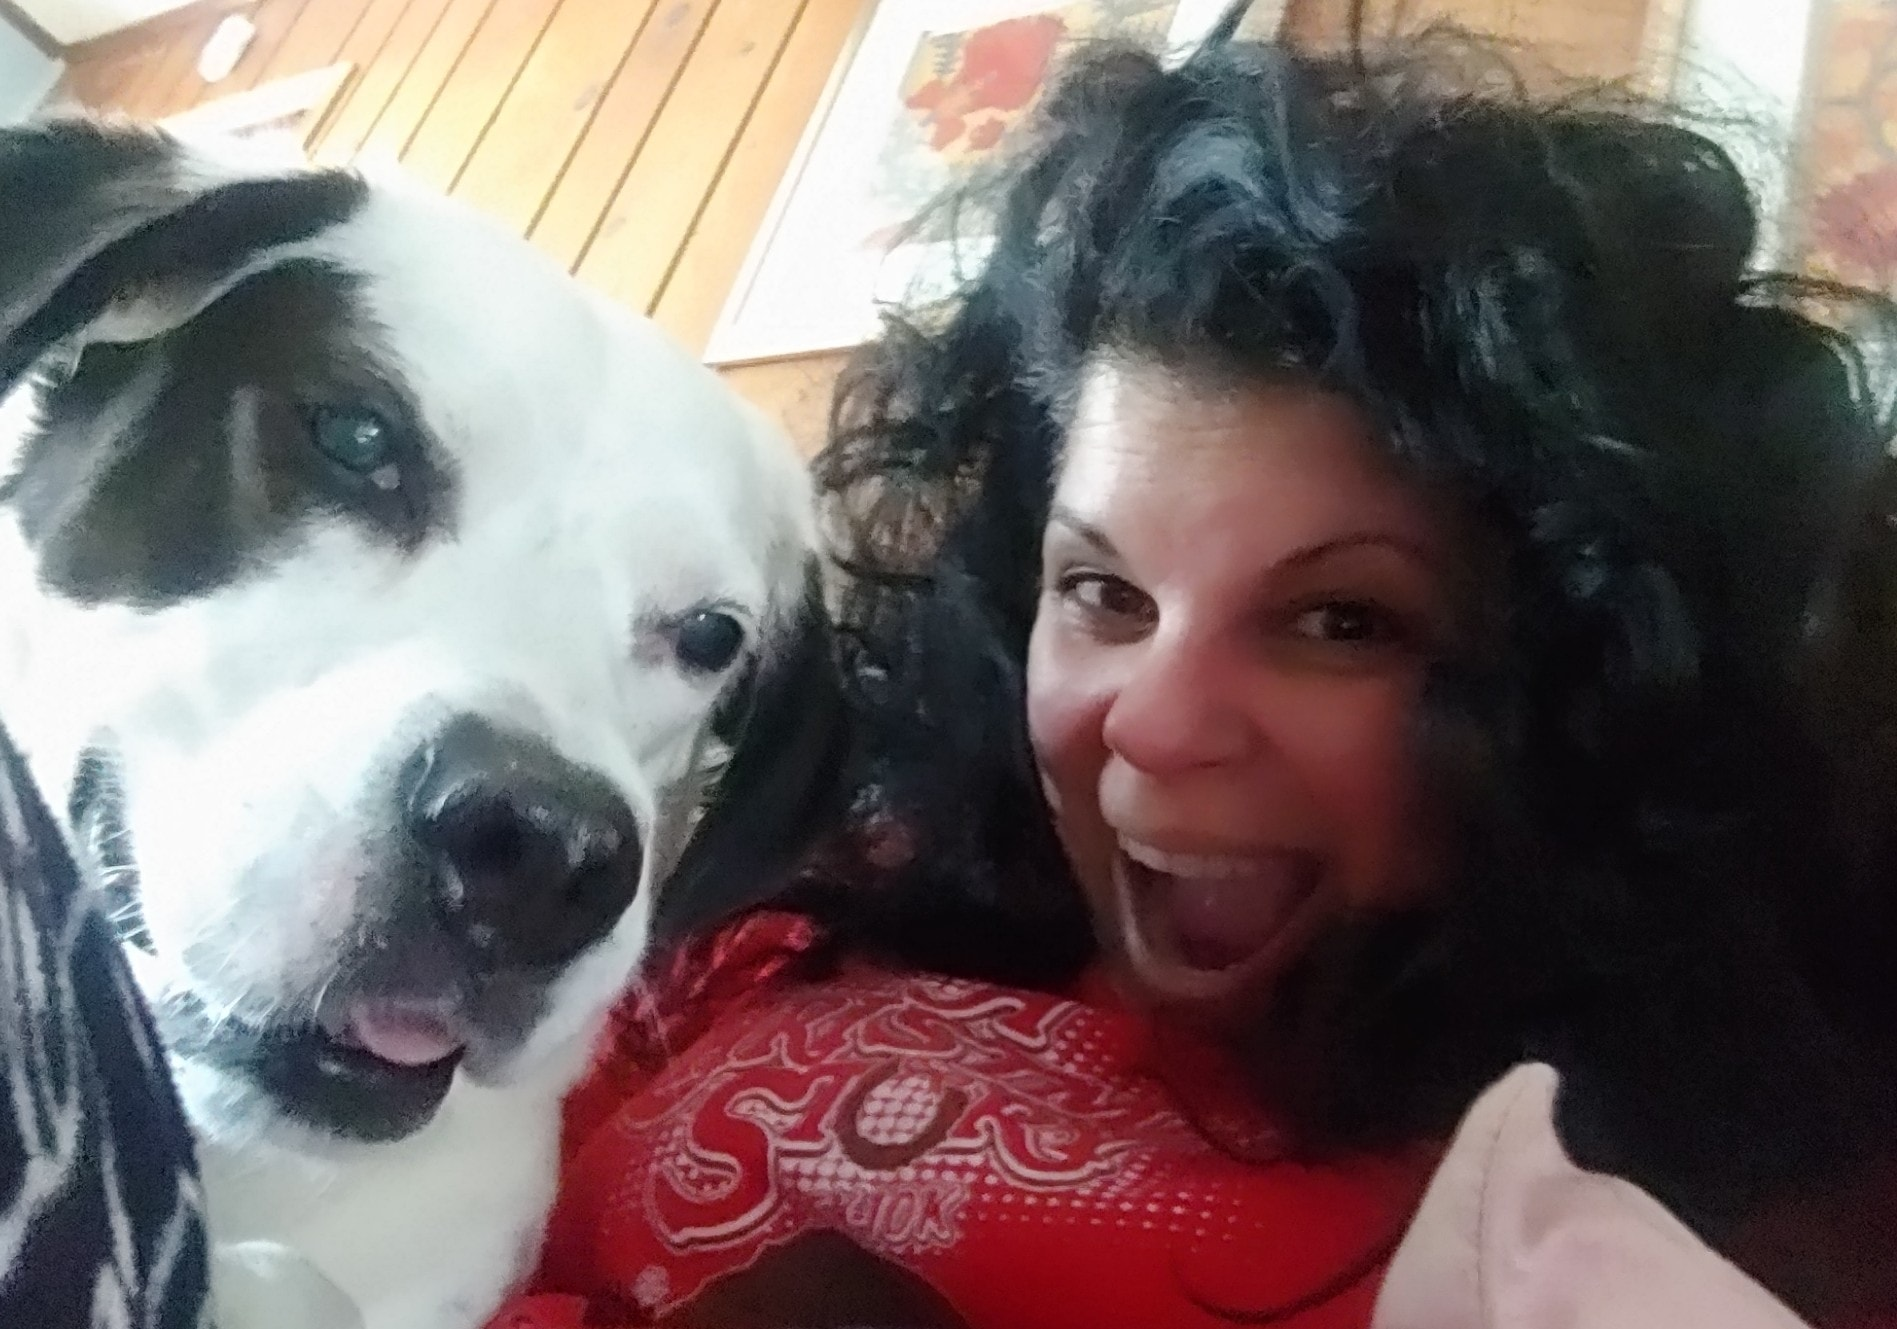 Smiling woman with a great big black-and-white dog.